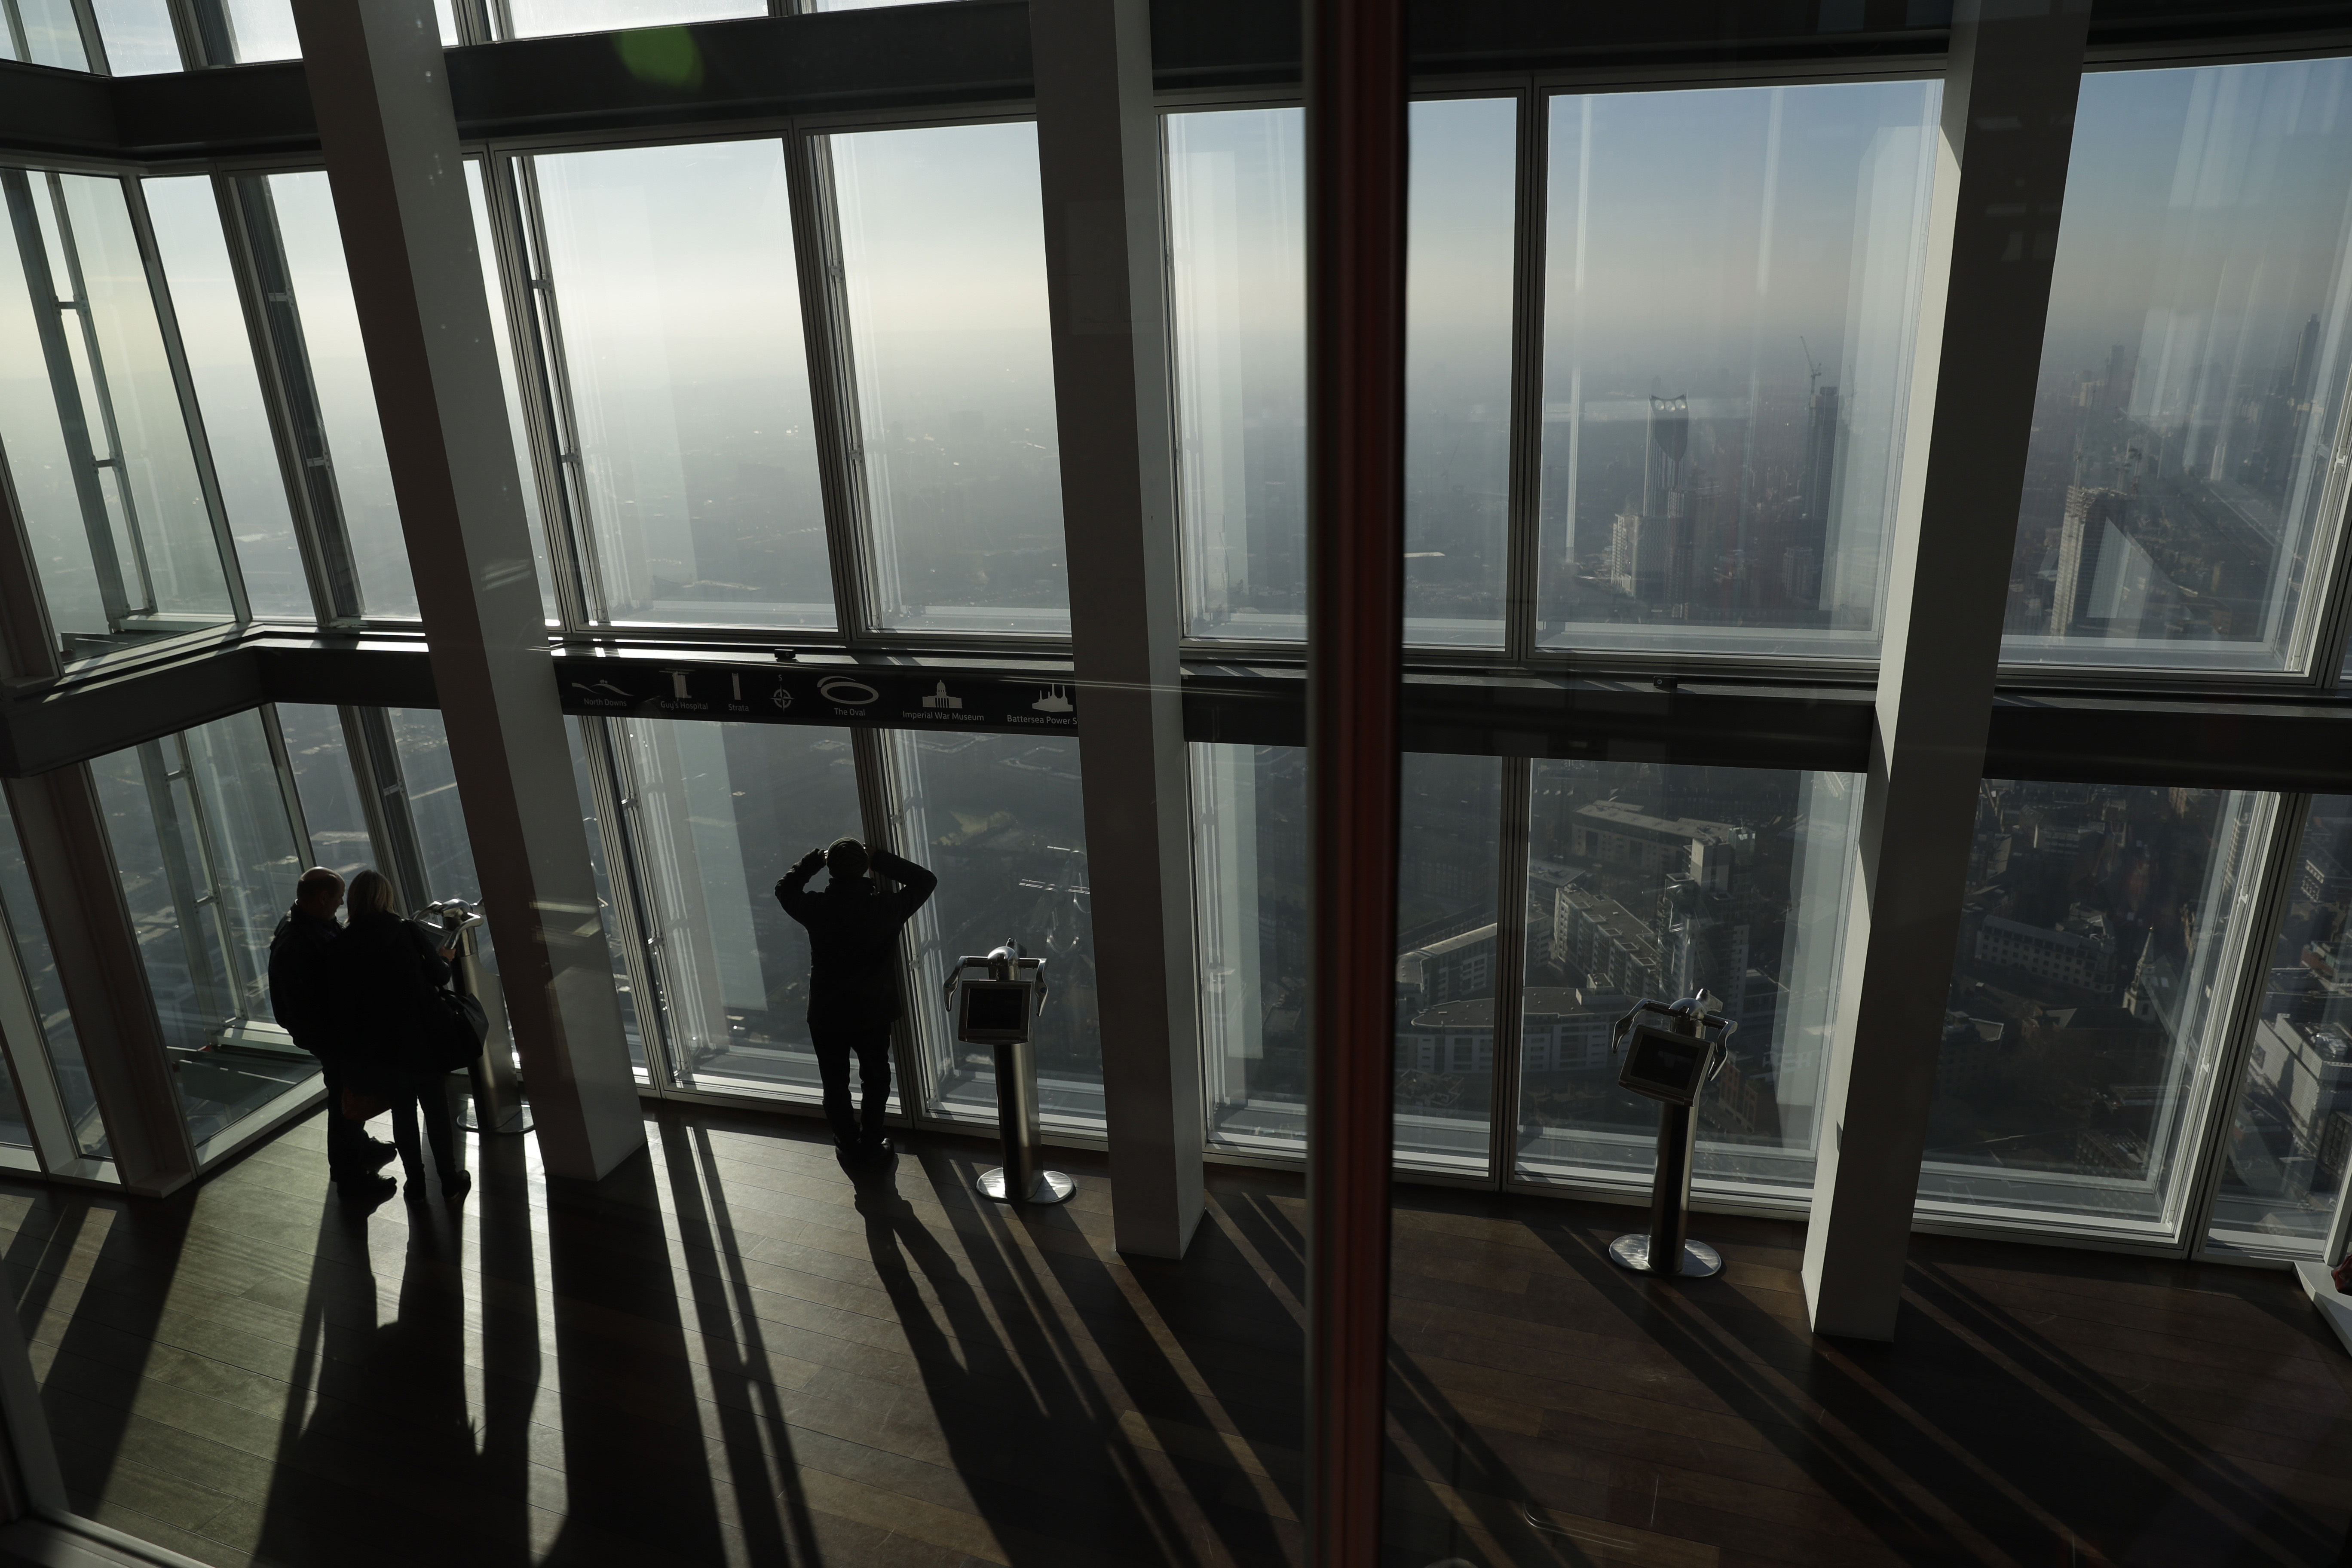 The vibrations of office buildings are causing depression